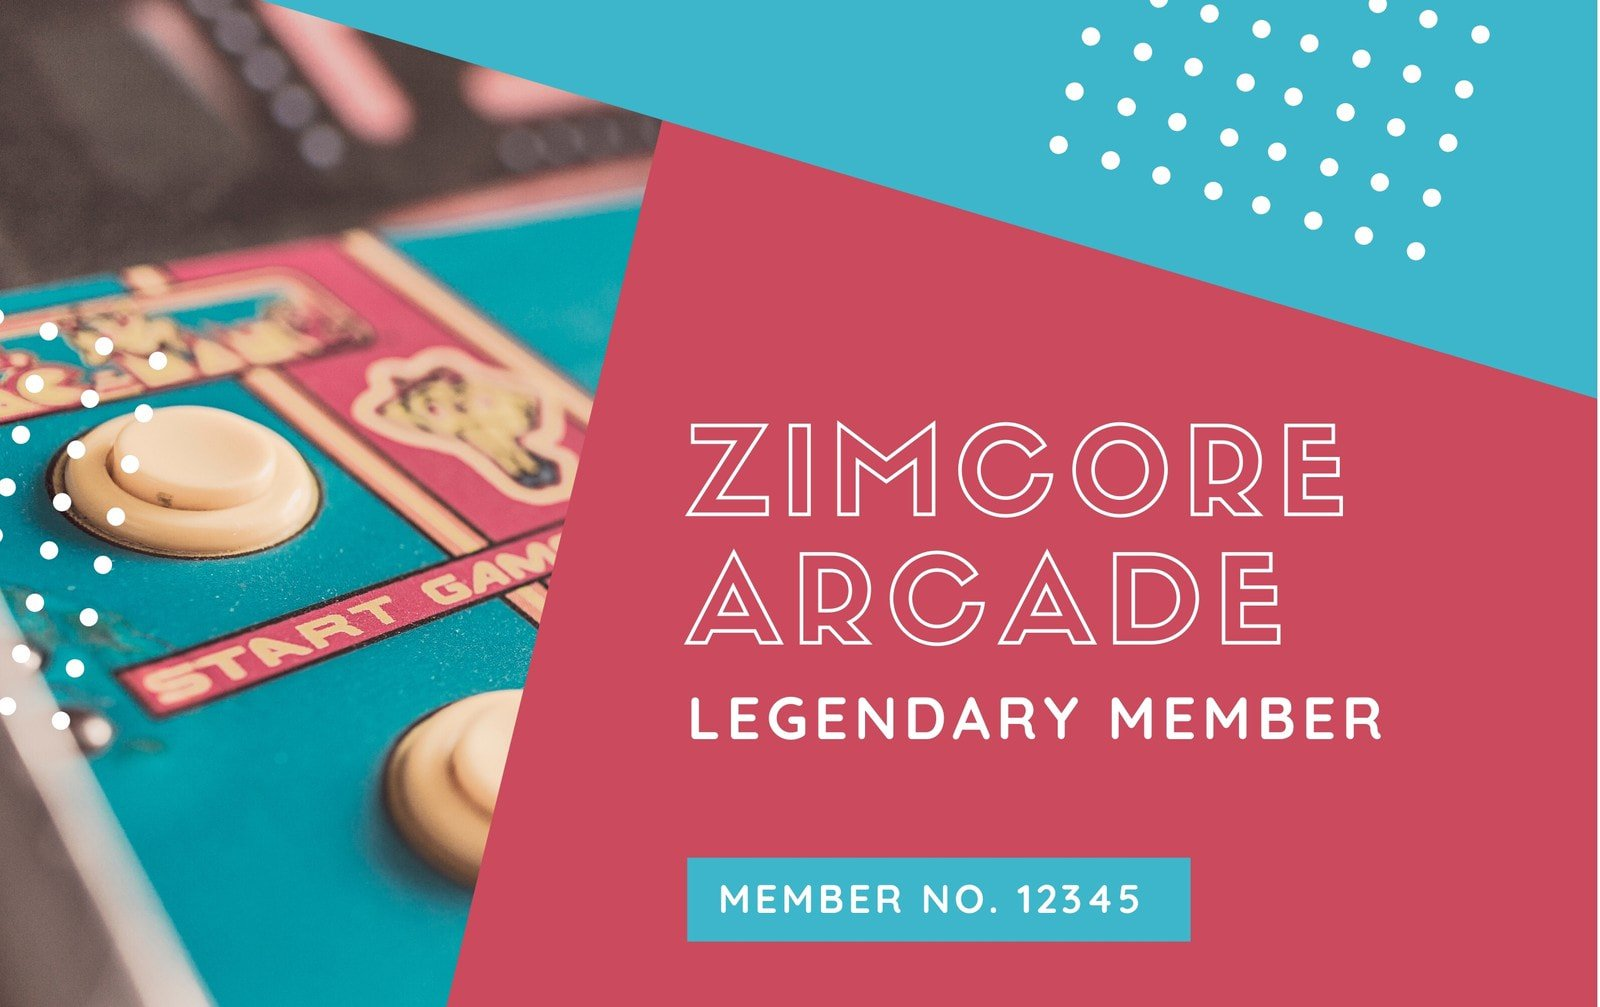 Red and Blue Retro Funky Arcade Membership ID Card